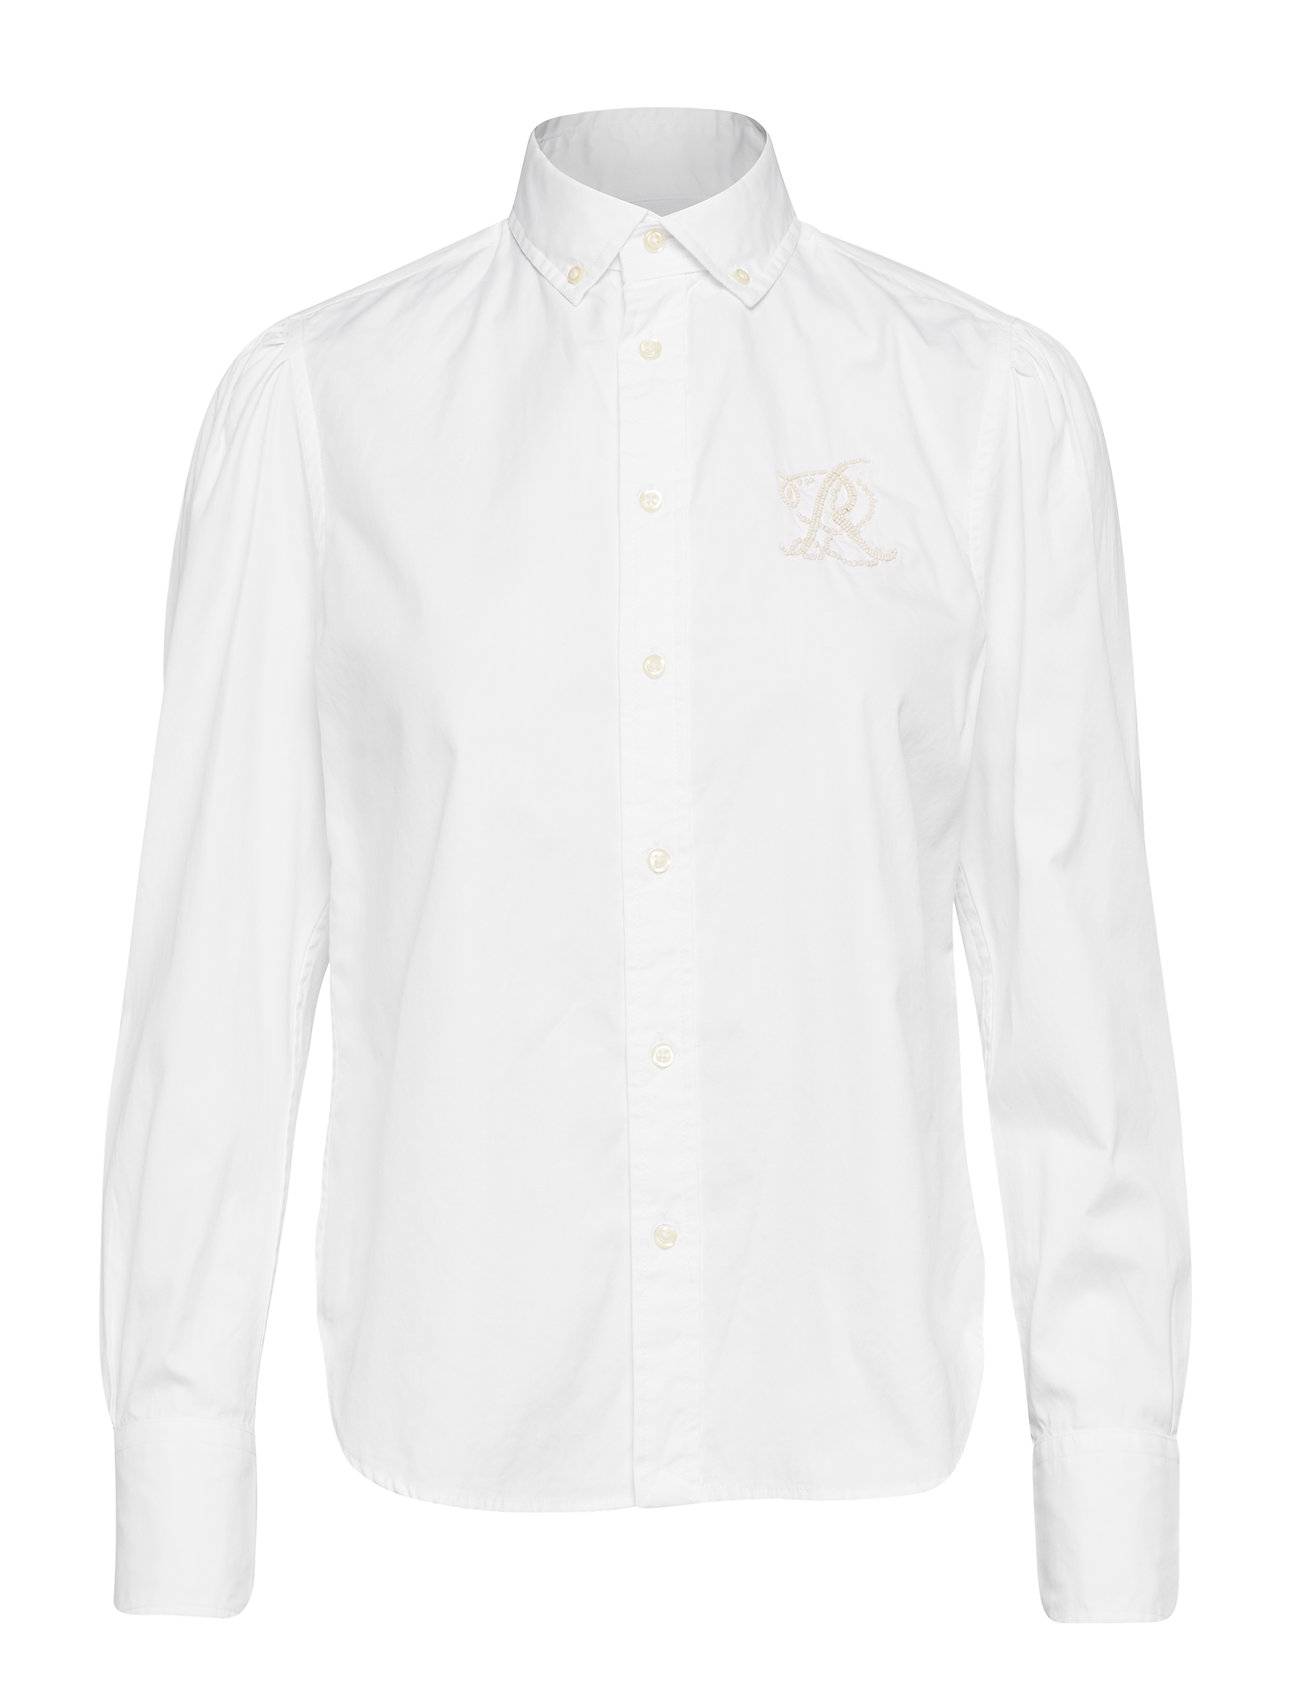 Polo Ralph Lauren Cotton Oxford Shirt - BSR WHITE